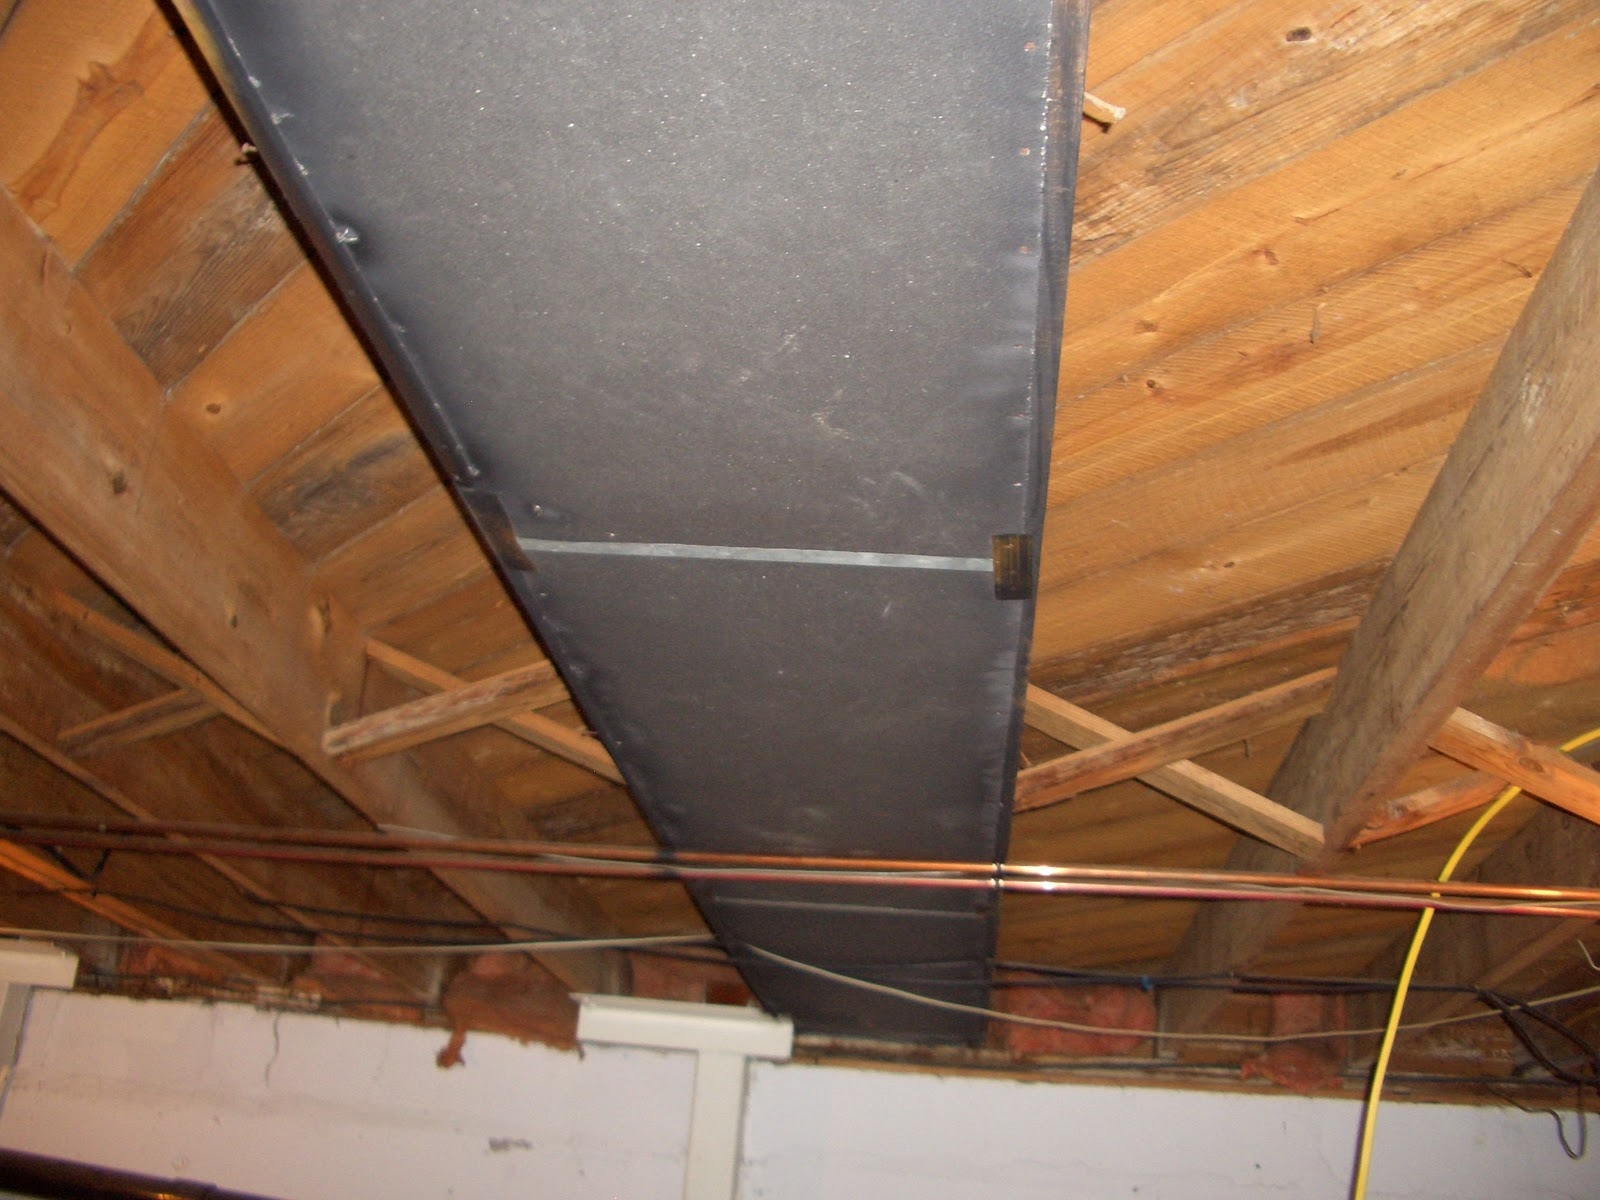 Basement Heating Vents Ceiling